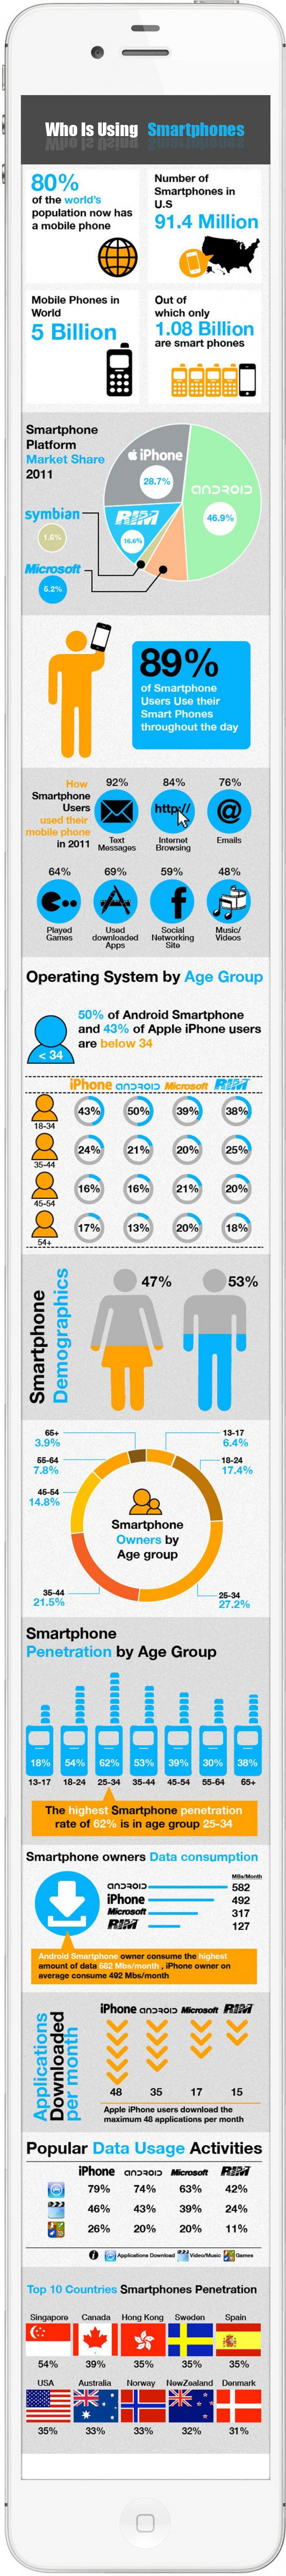 who is using smartphone